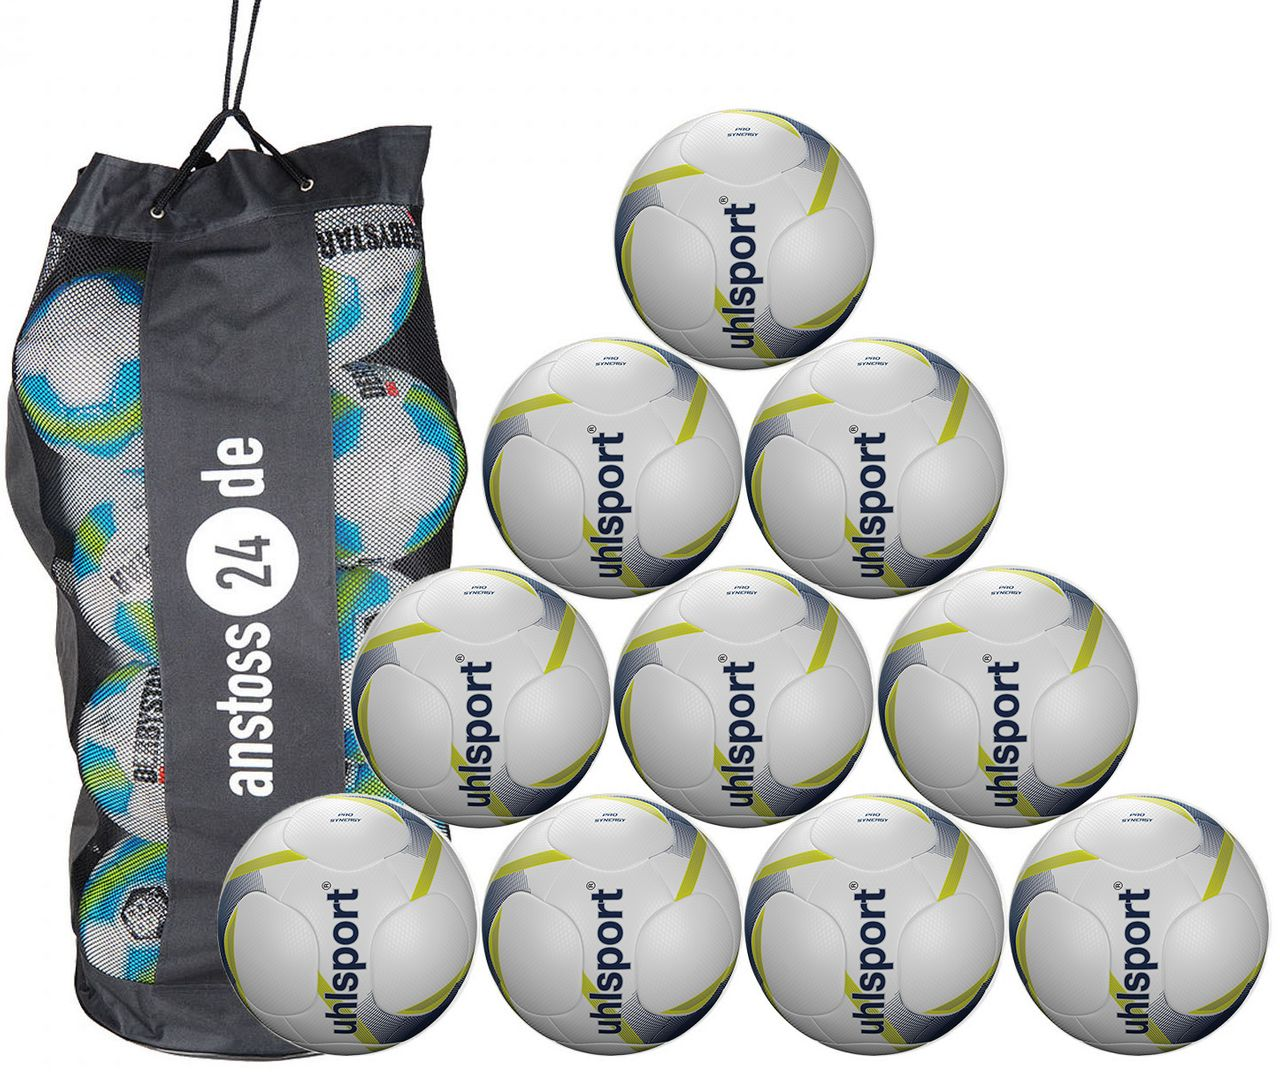 10 x Uhlsport Trainingsball PRO SYNERGY inkl. Ballsack